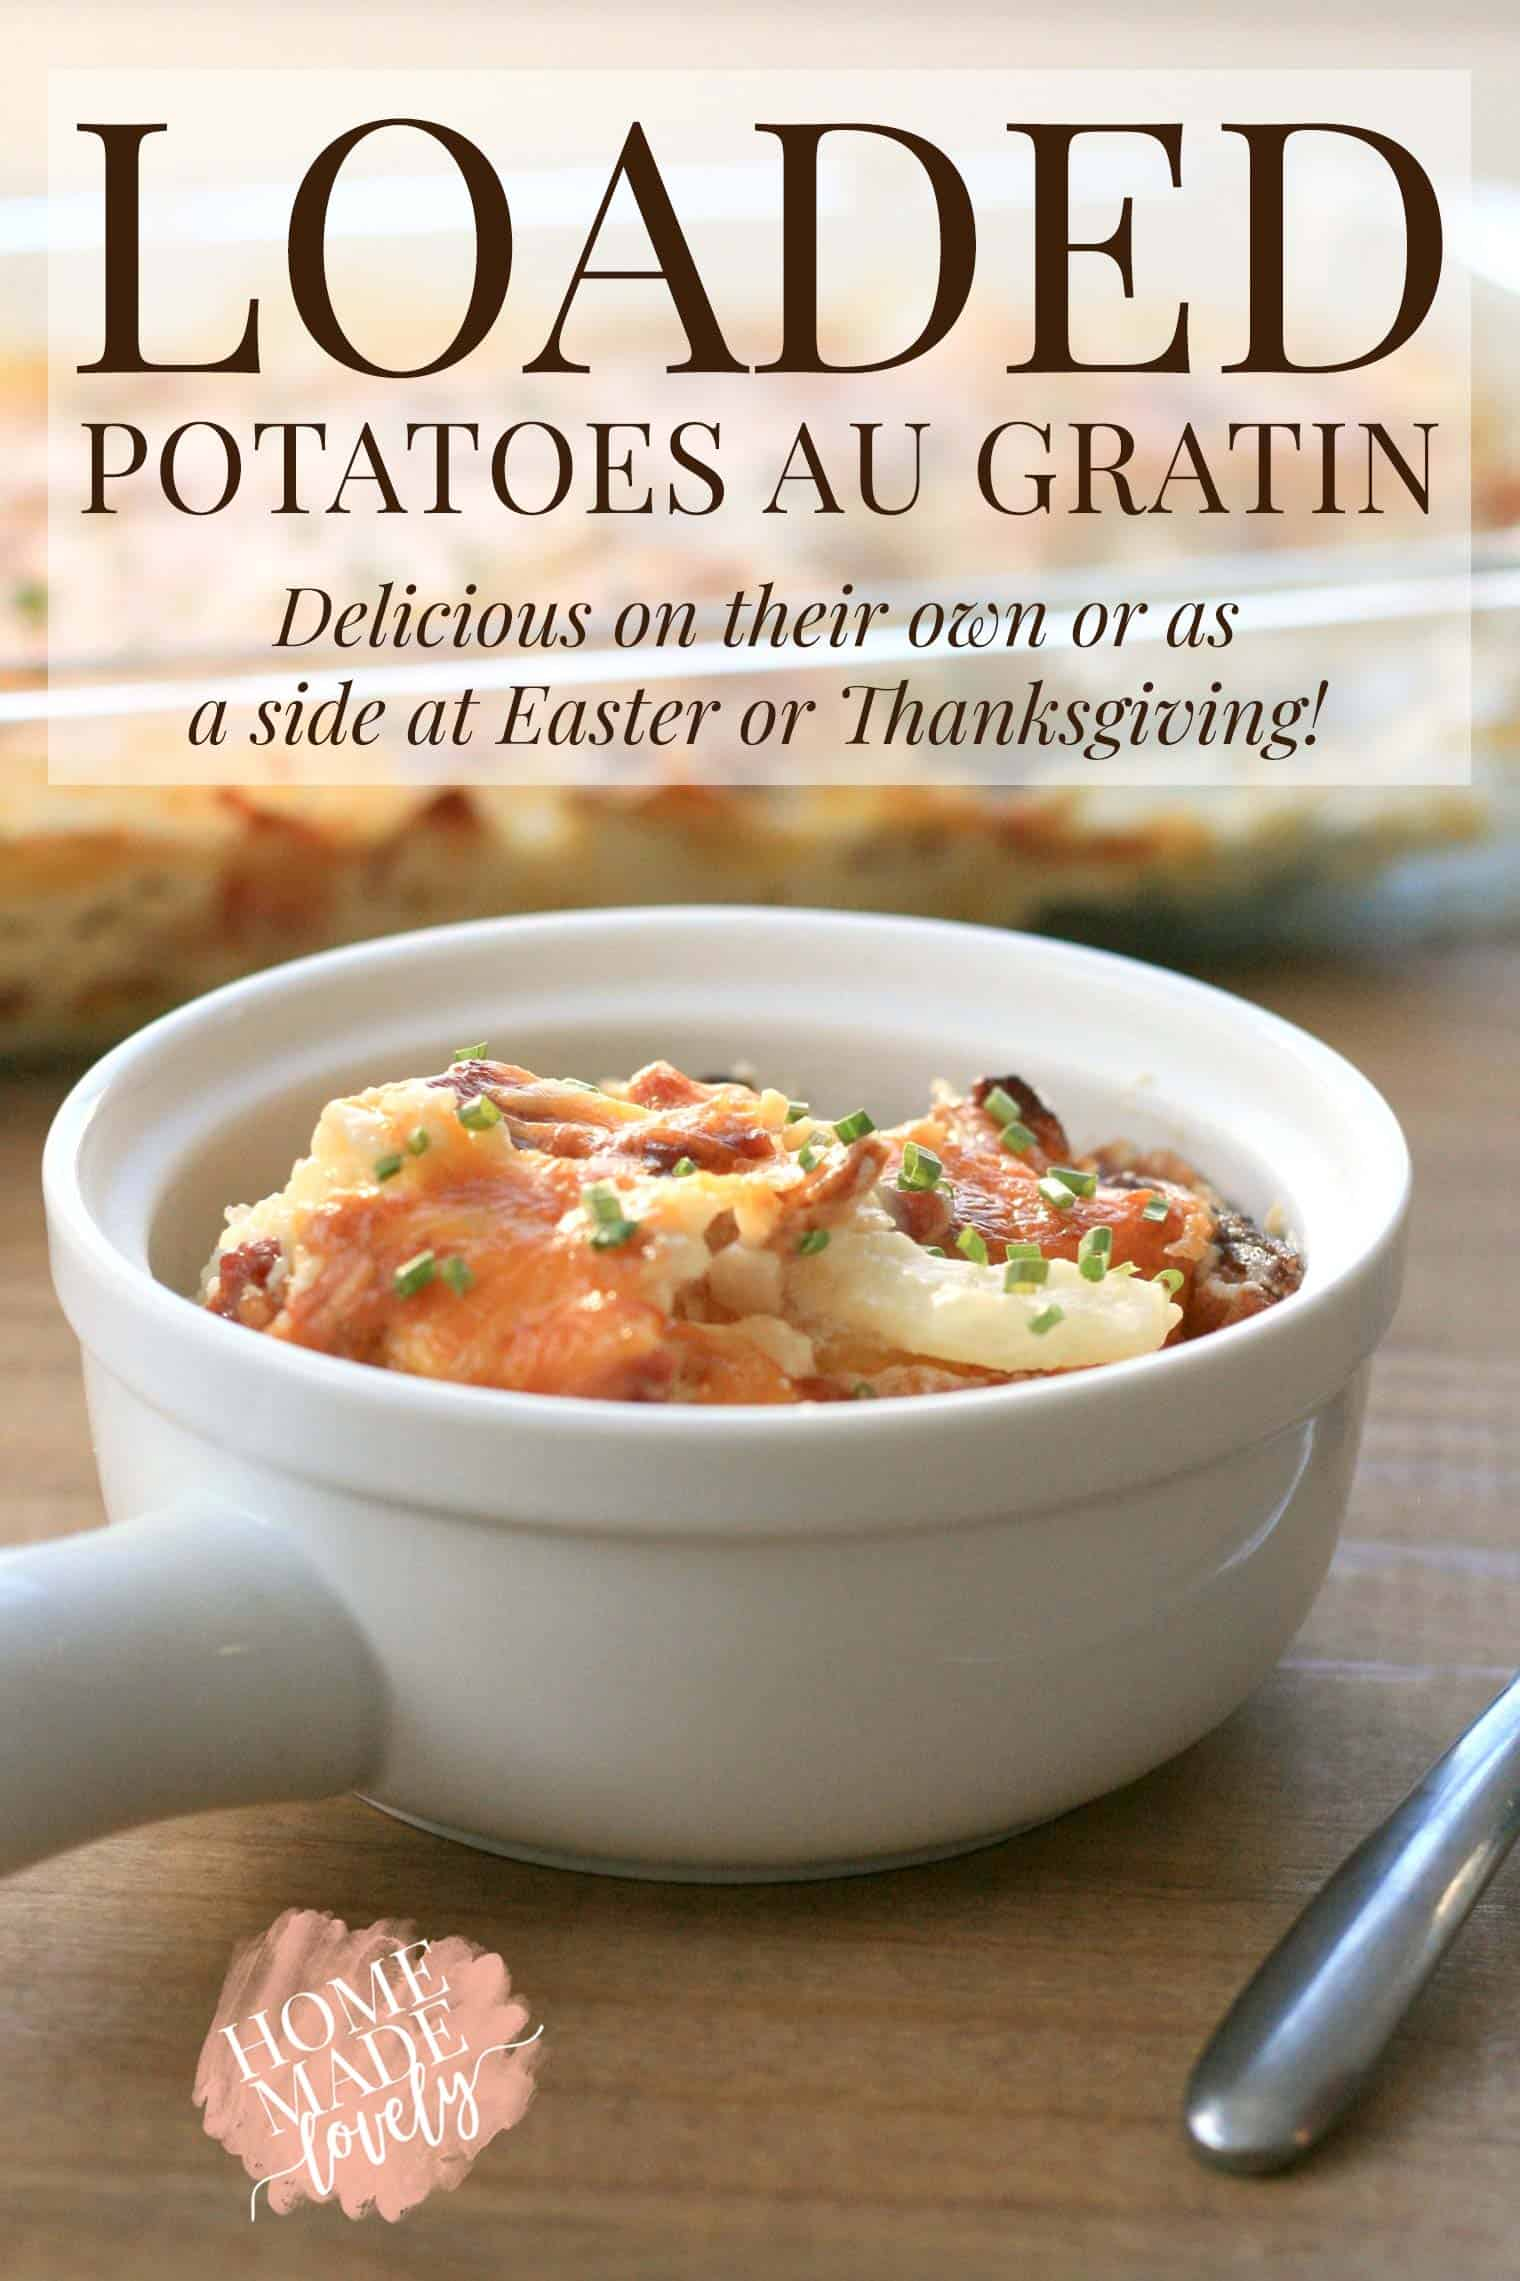 loaded potatoes au gratin in a bowl